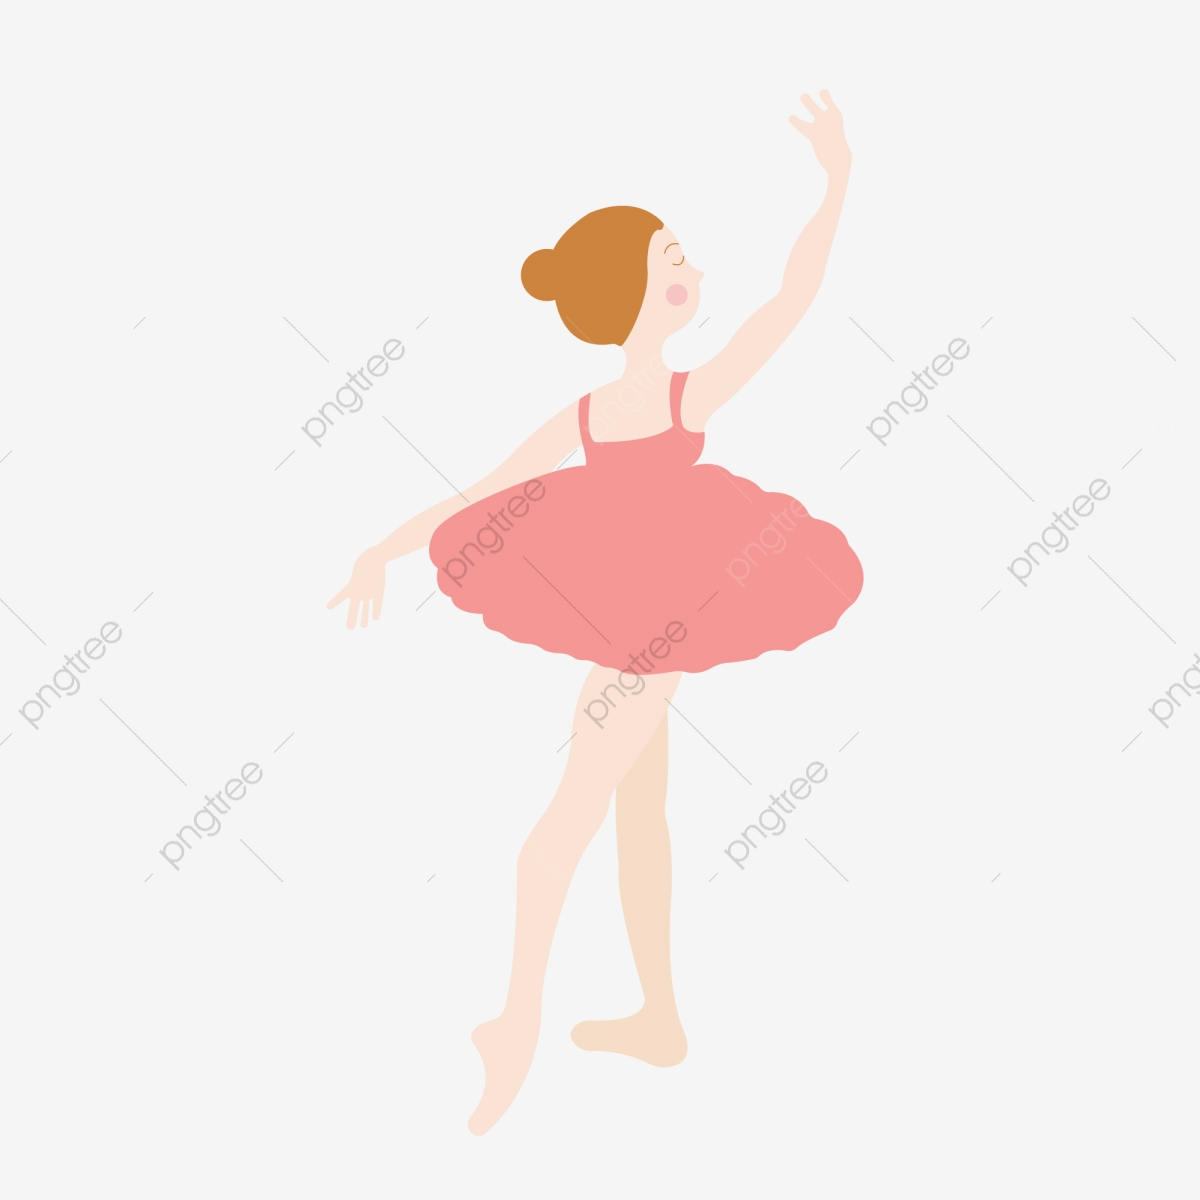 Cartoon Hand Drawn Ballet Dancer Illustration Cartoon Hand Drawn Ballet Dancer Dancing Png And Vector With Transparent Background For Free Download